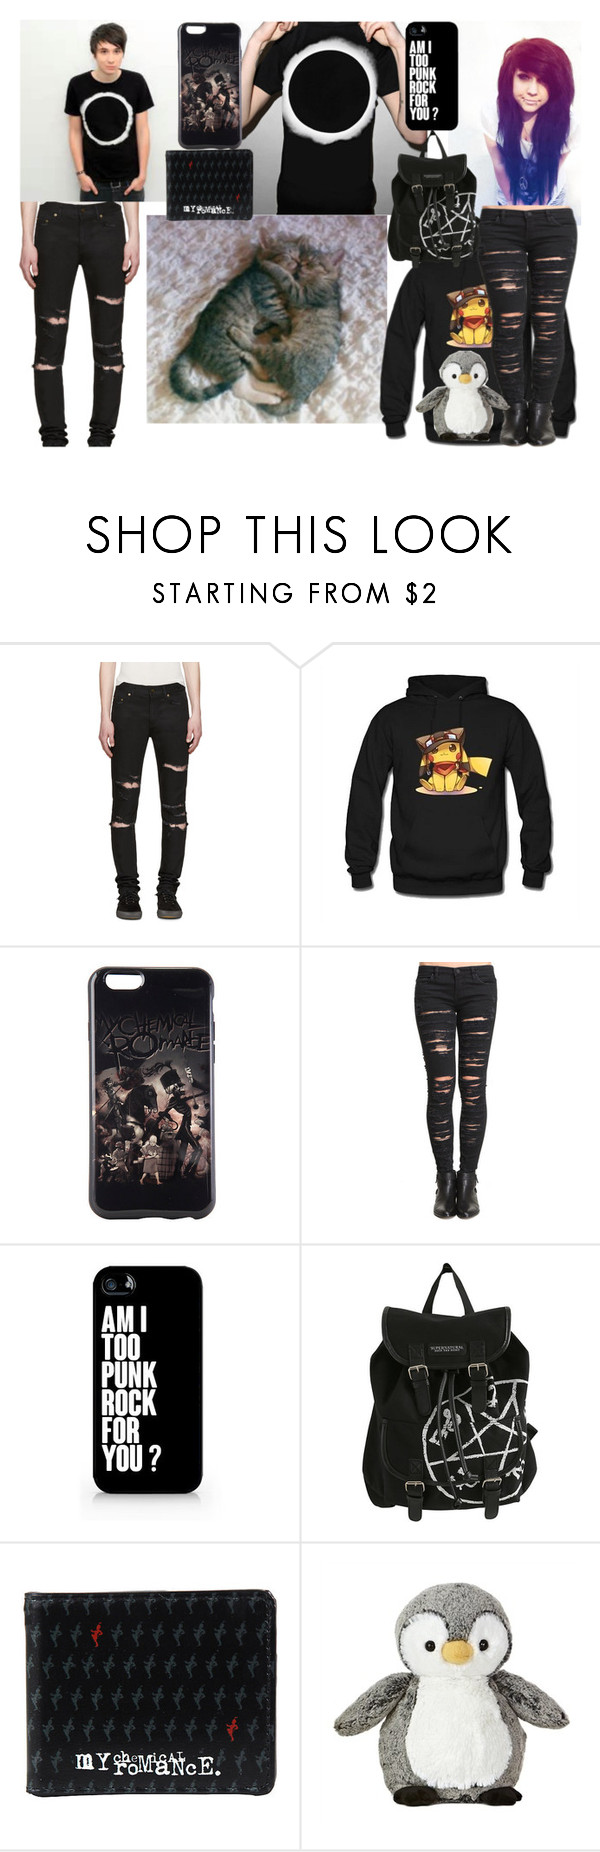 """Going to hang with Dan. I brought my penguin...-Stephanie        Going to hang with Steph. I hope she has fun.-Dan"" by michael-cliffords-girl-0302 ❤ liked on Polyvore featuring Yves Saint Laurent, New Love Club, BLANKNYC and Samsung"